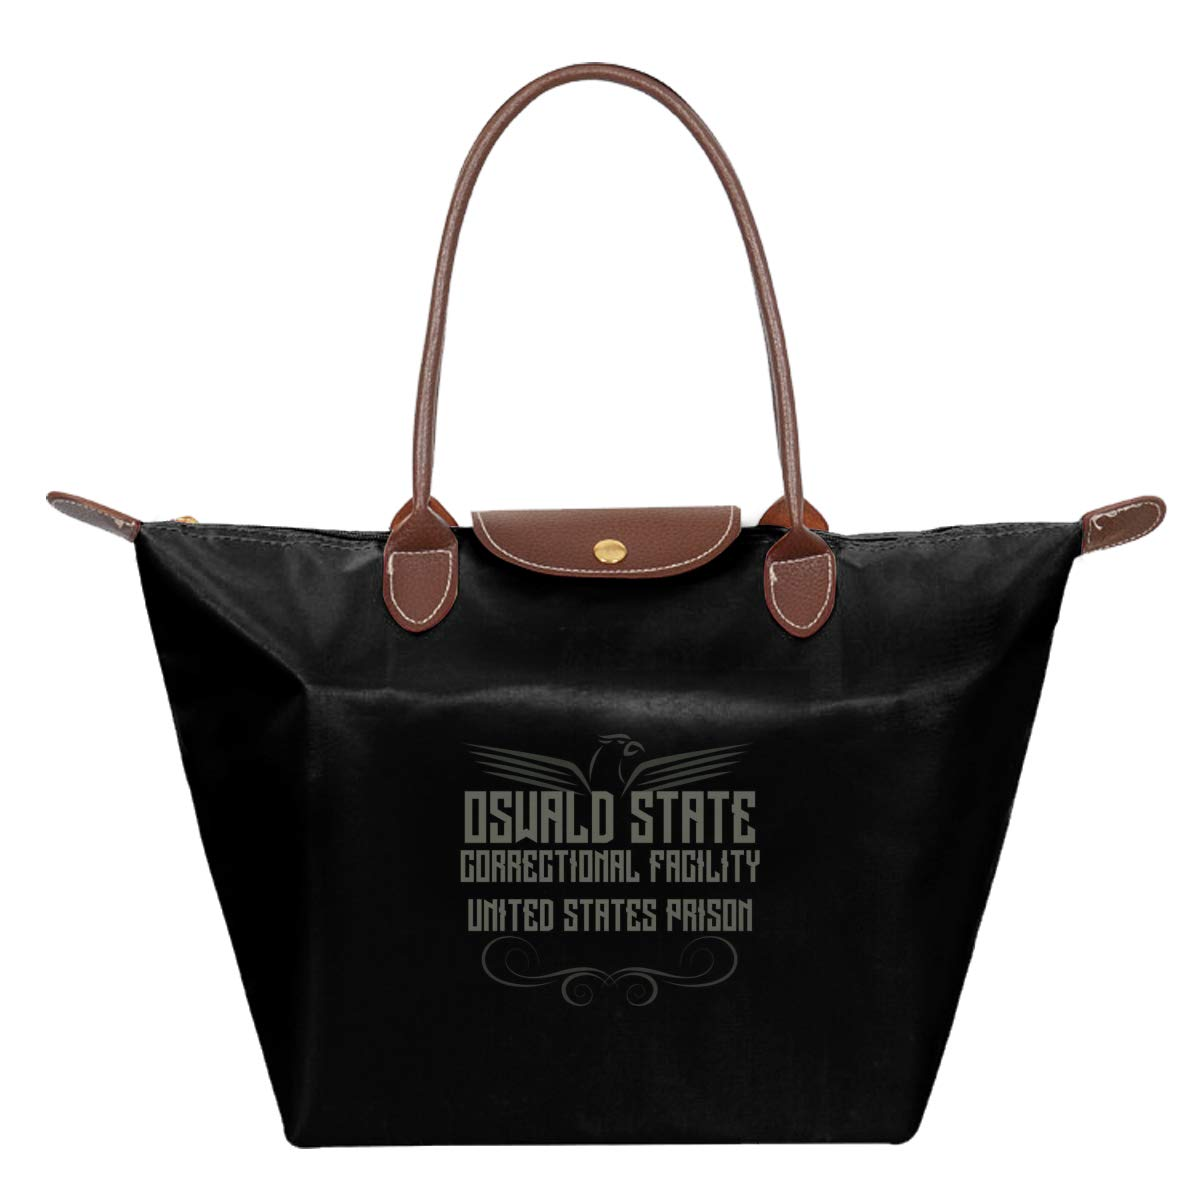 Oswald State Correctional Facility Oz Waterproof Leather Folded Messenger Nylon Bag Travel Tote Hopping Folding School Handbags